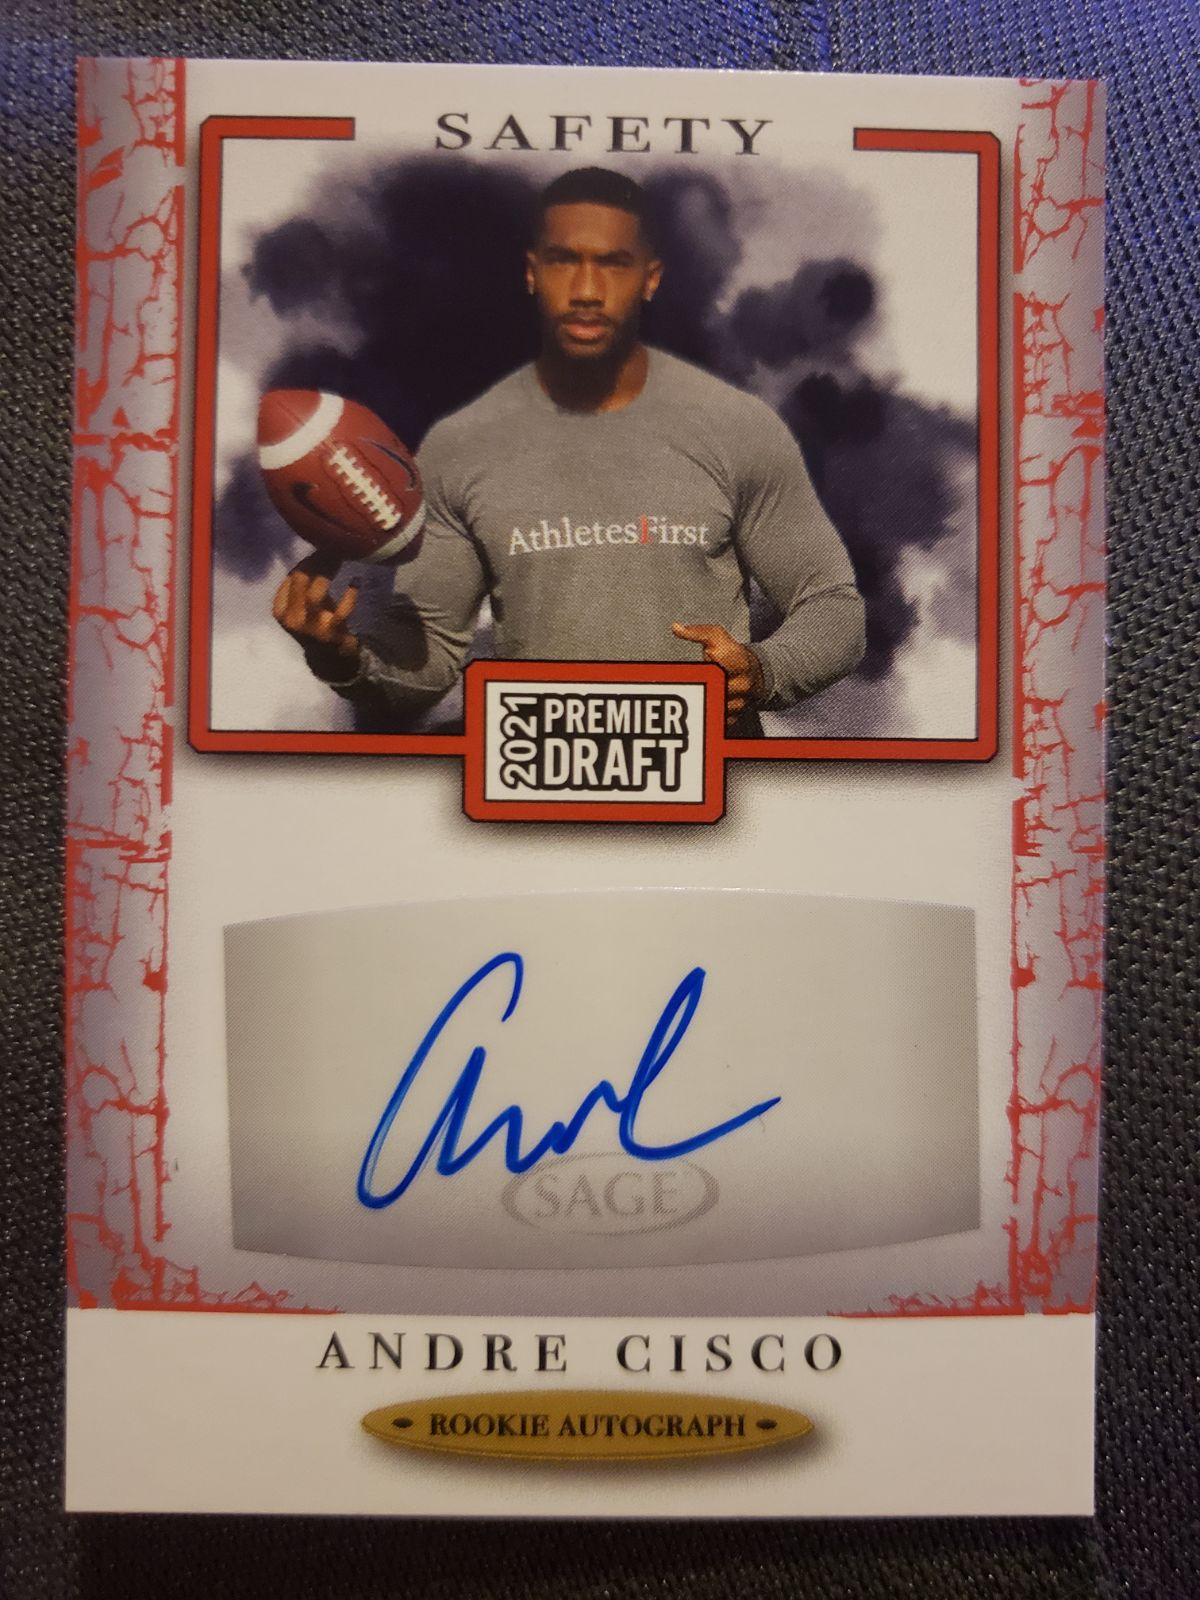 Andre Cisco signed card